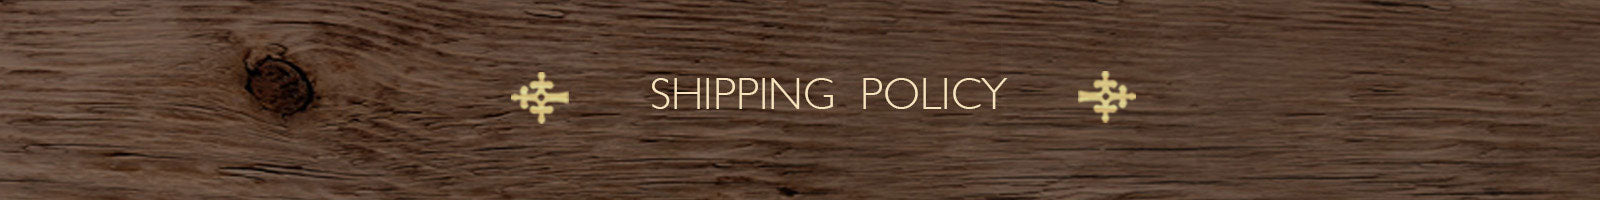 Shipping Policy - The India Craft House